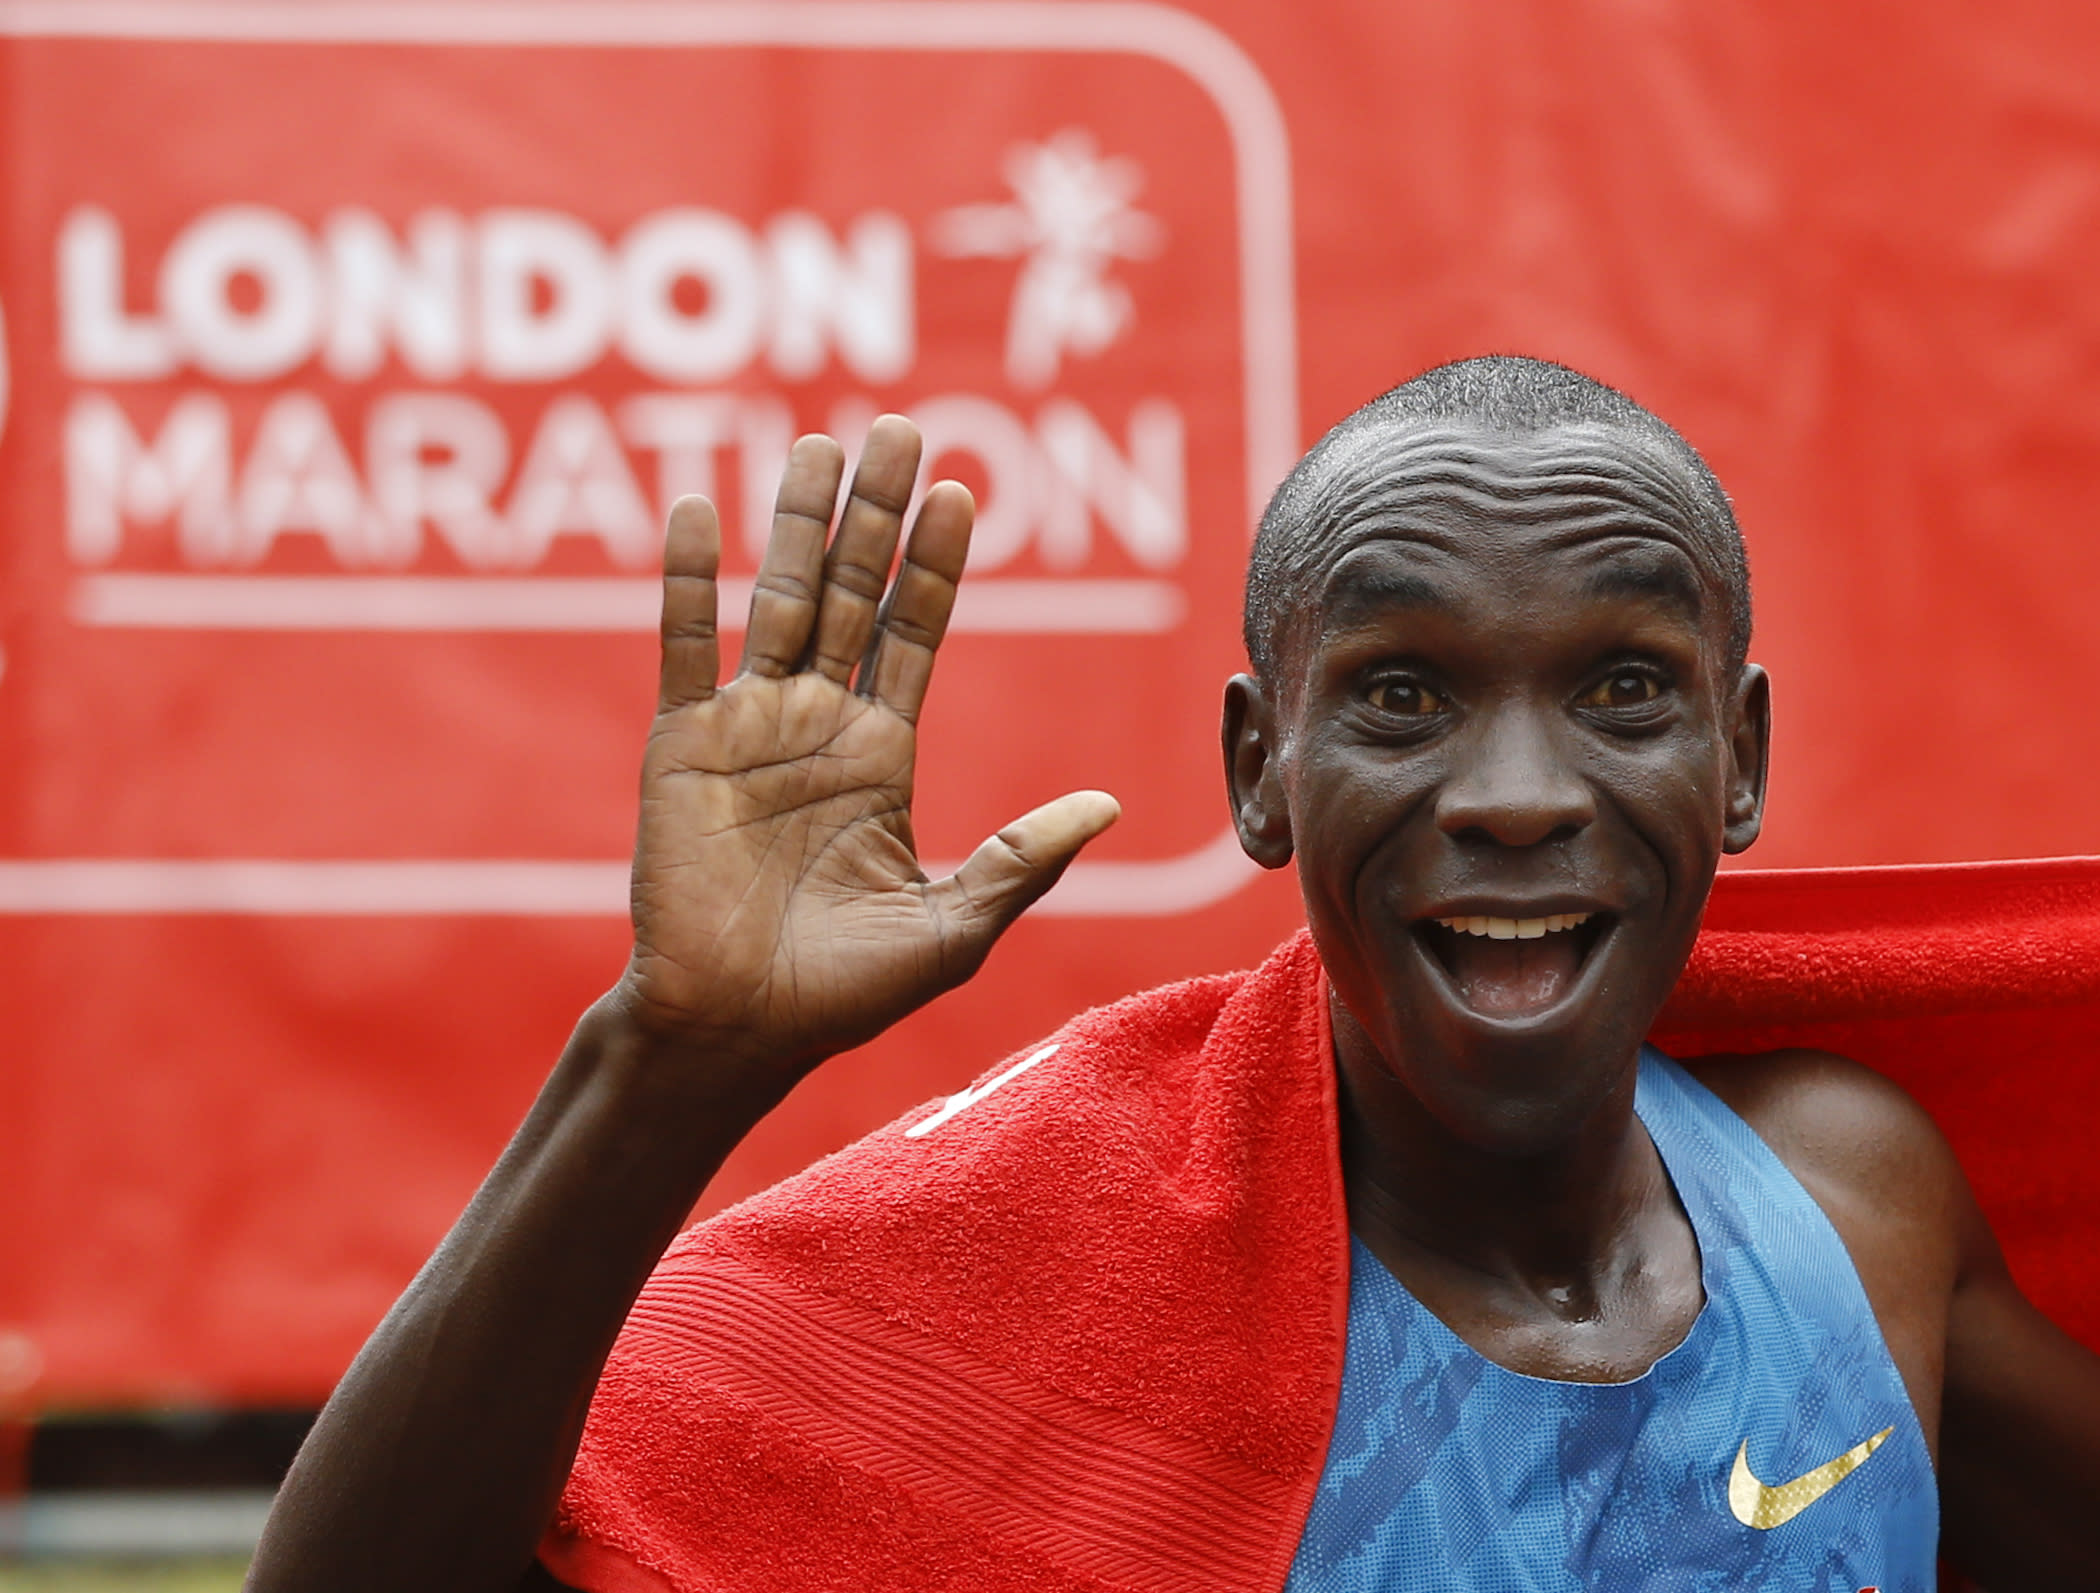 Kipchoge wins his 1st London Marathon in Kenyan top 4